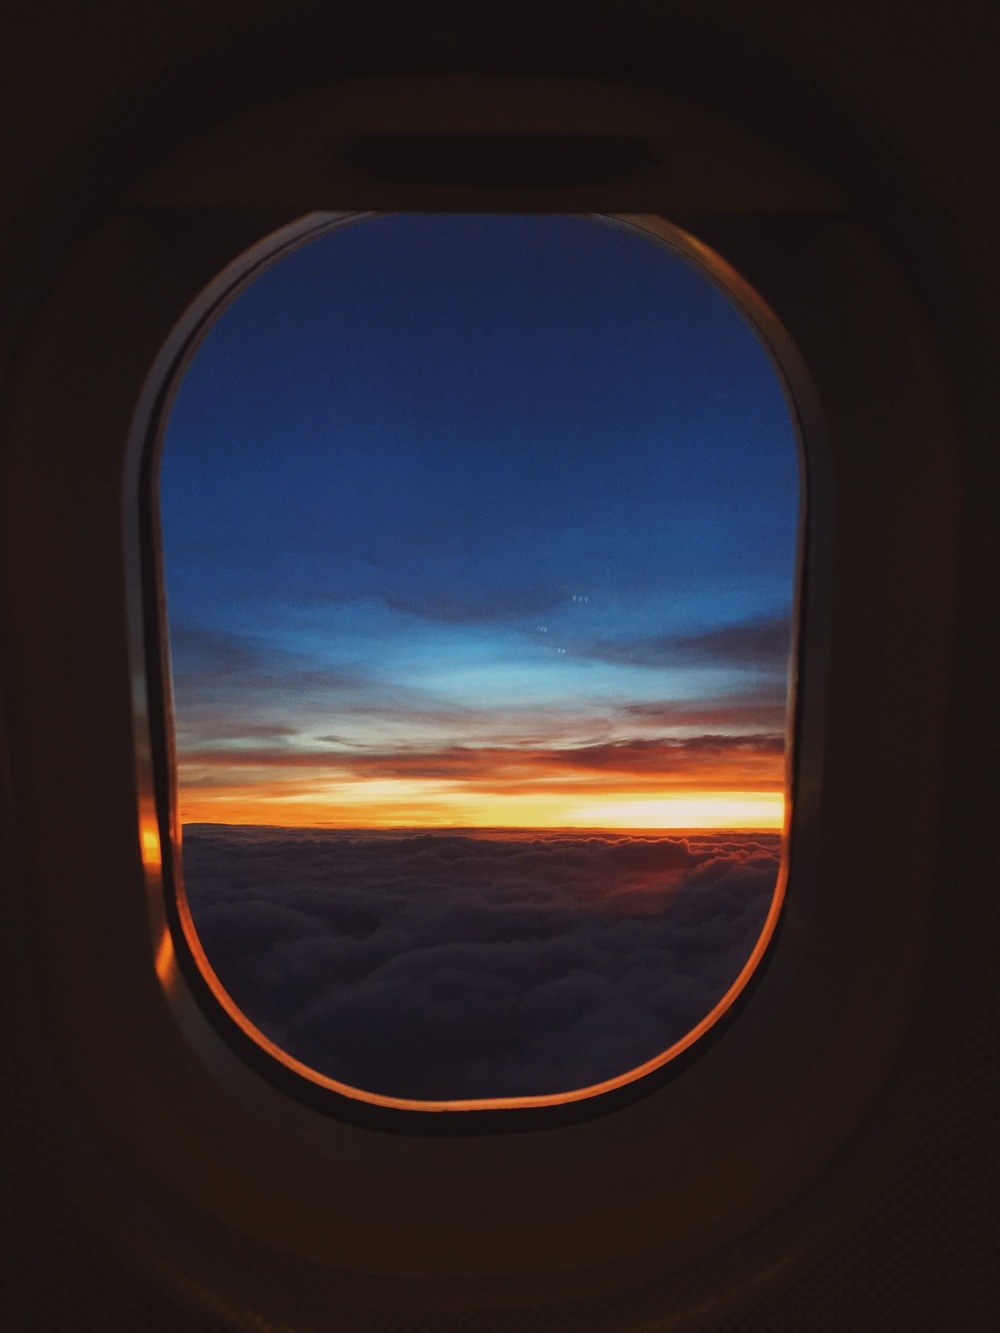 lufthansa flight sunset